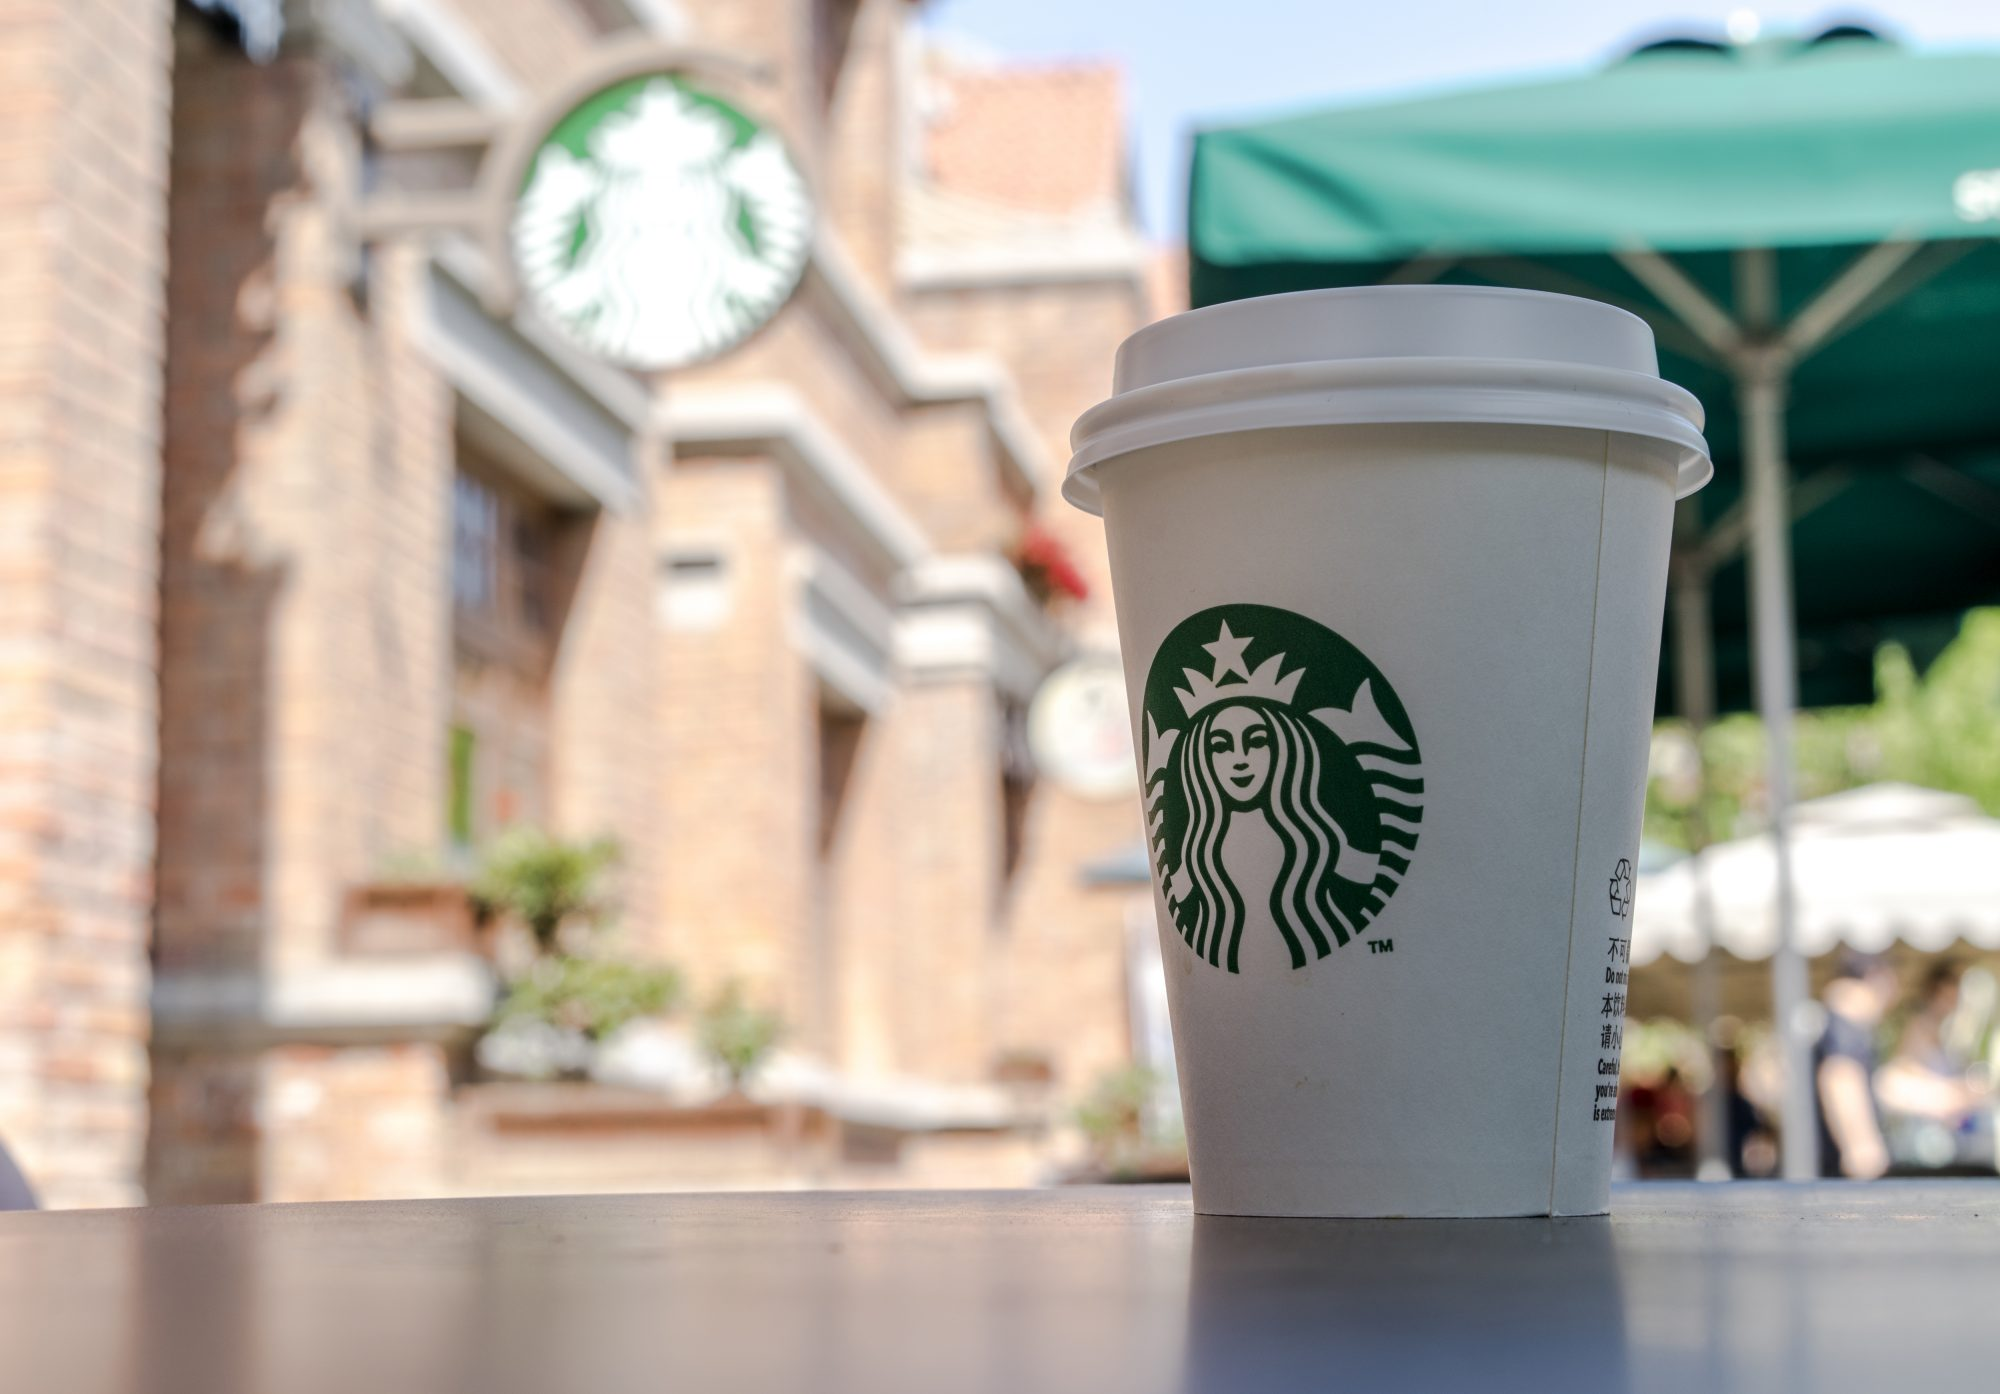 Picture of Starbucks Cup